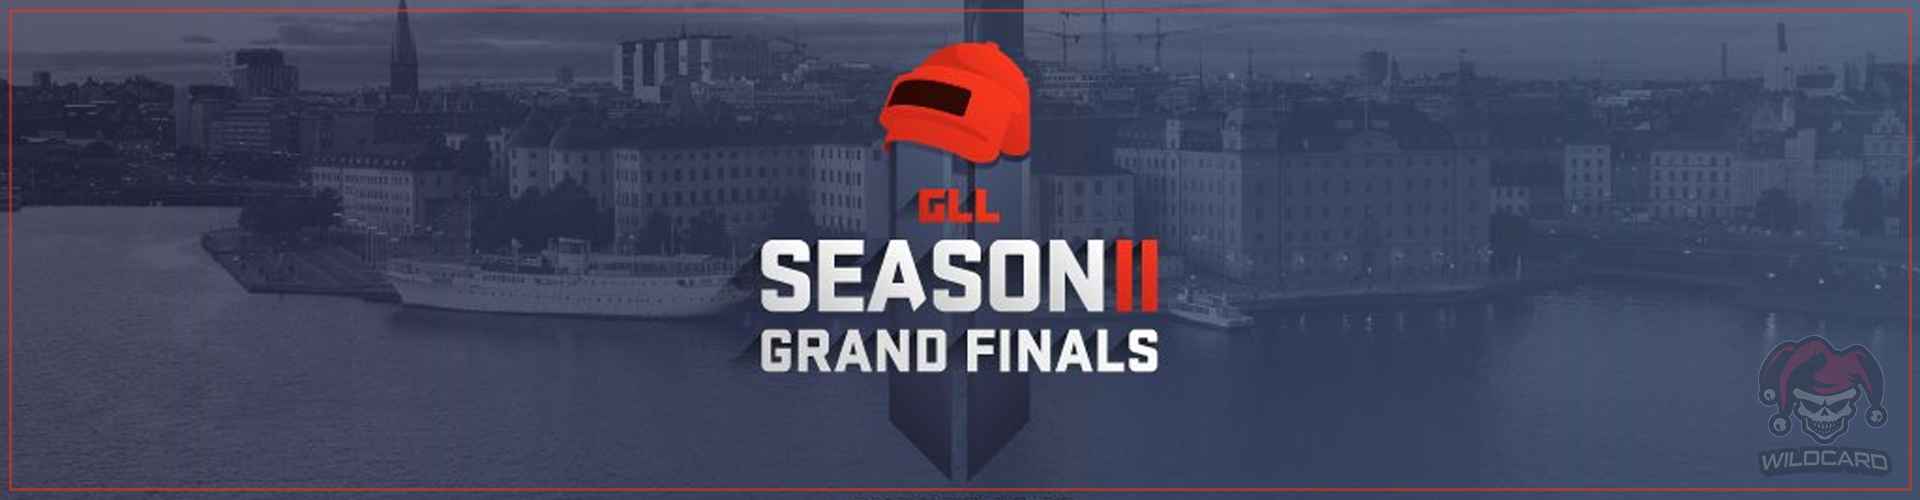 Wildcard PUBG Going to Sweden for the GLL Finals!